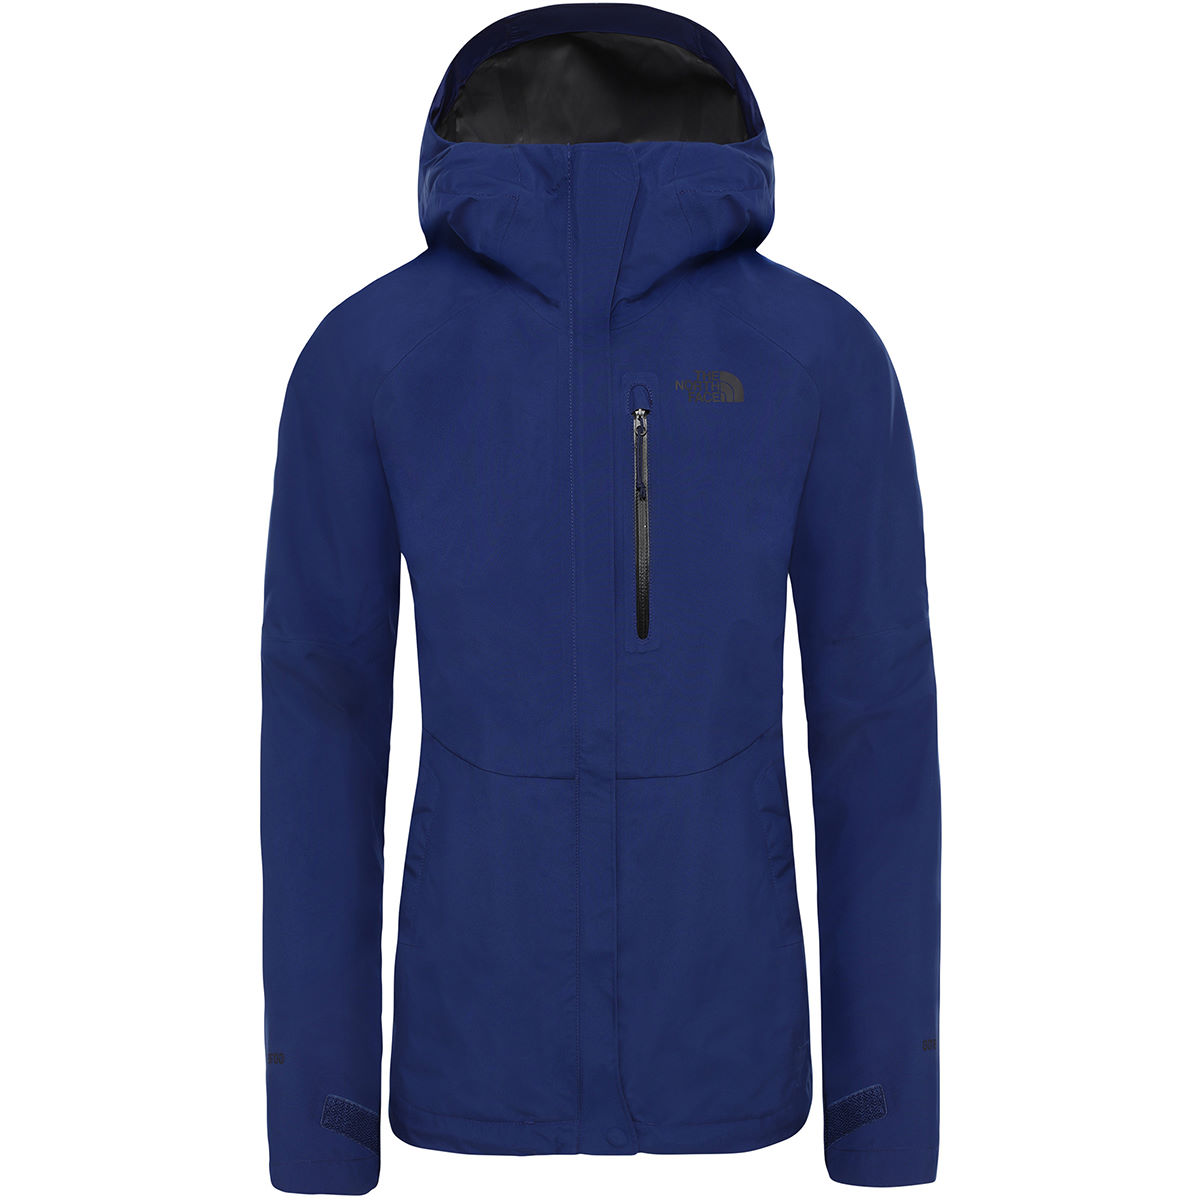 The North Face The North Face Womens Dryzzle Jacket   Jackets